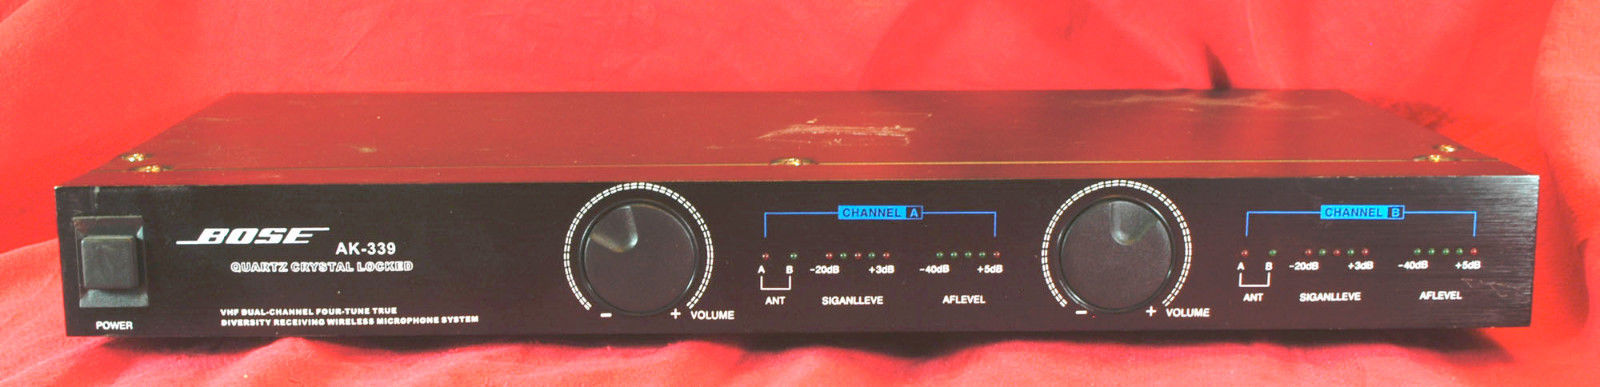 Bose AK-339 dual wireless microphone receiver